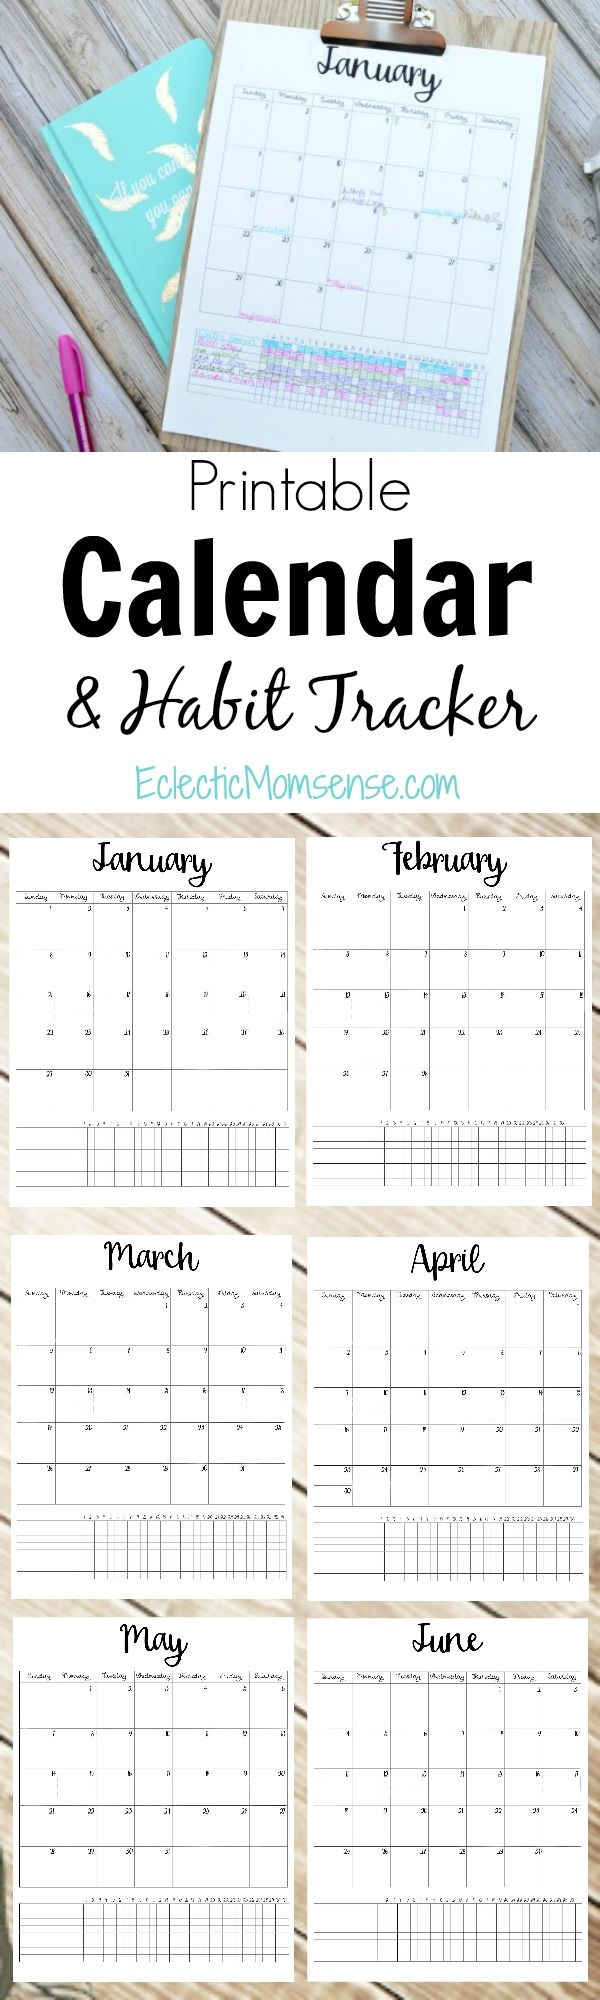 Grab this FREE Printable Calendar with Habit Tracking + Enter to win BIG with the #MyLittleWins sweepstakes.  #ad @walmart @zoneperfect